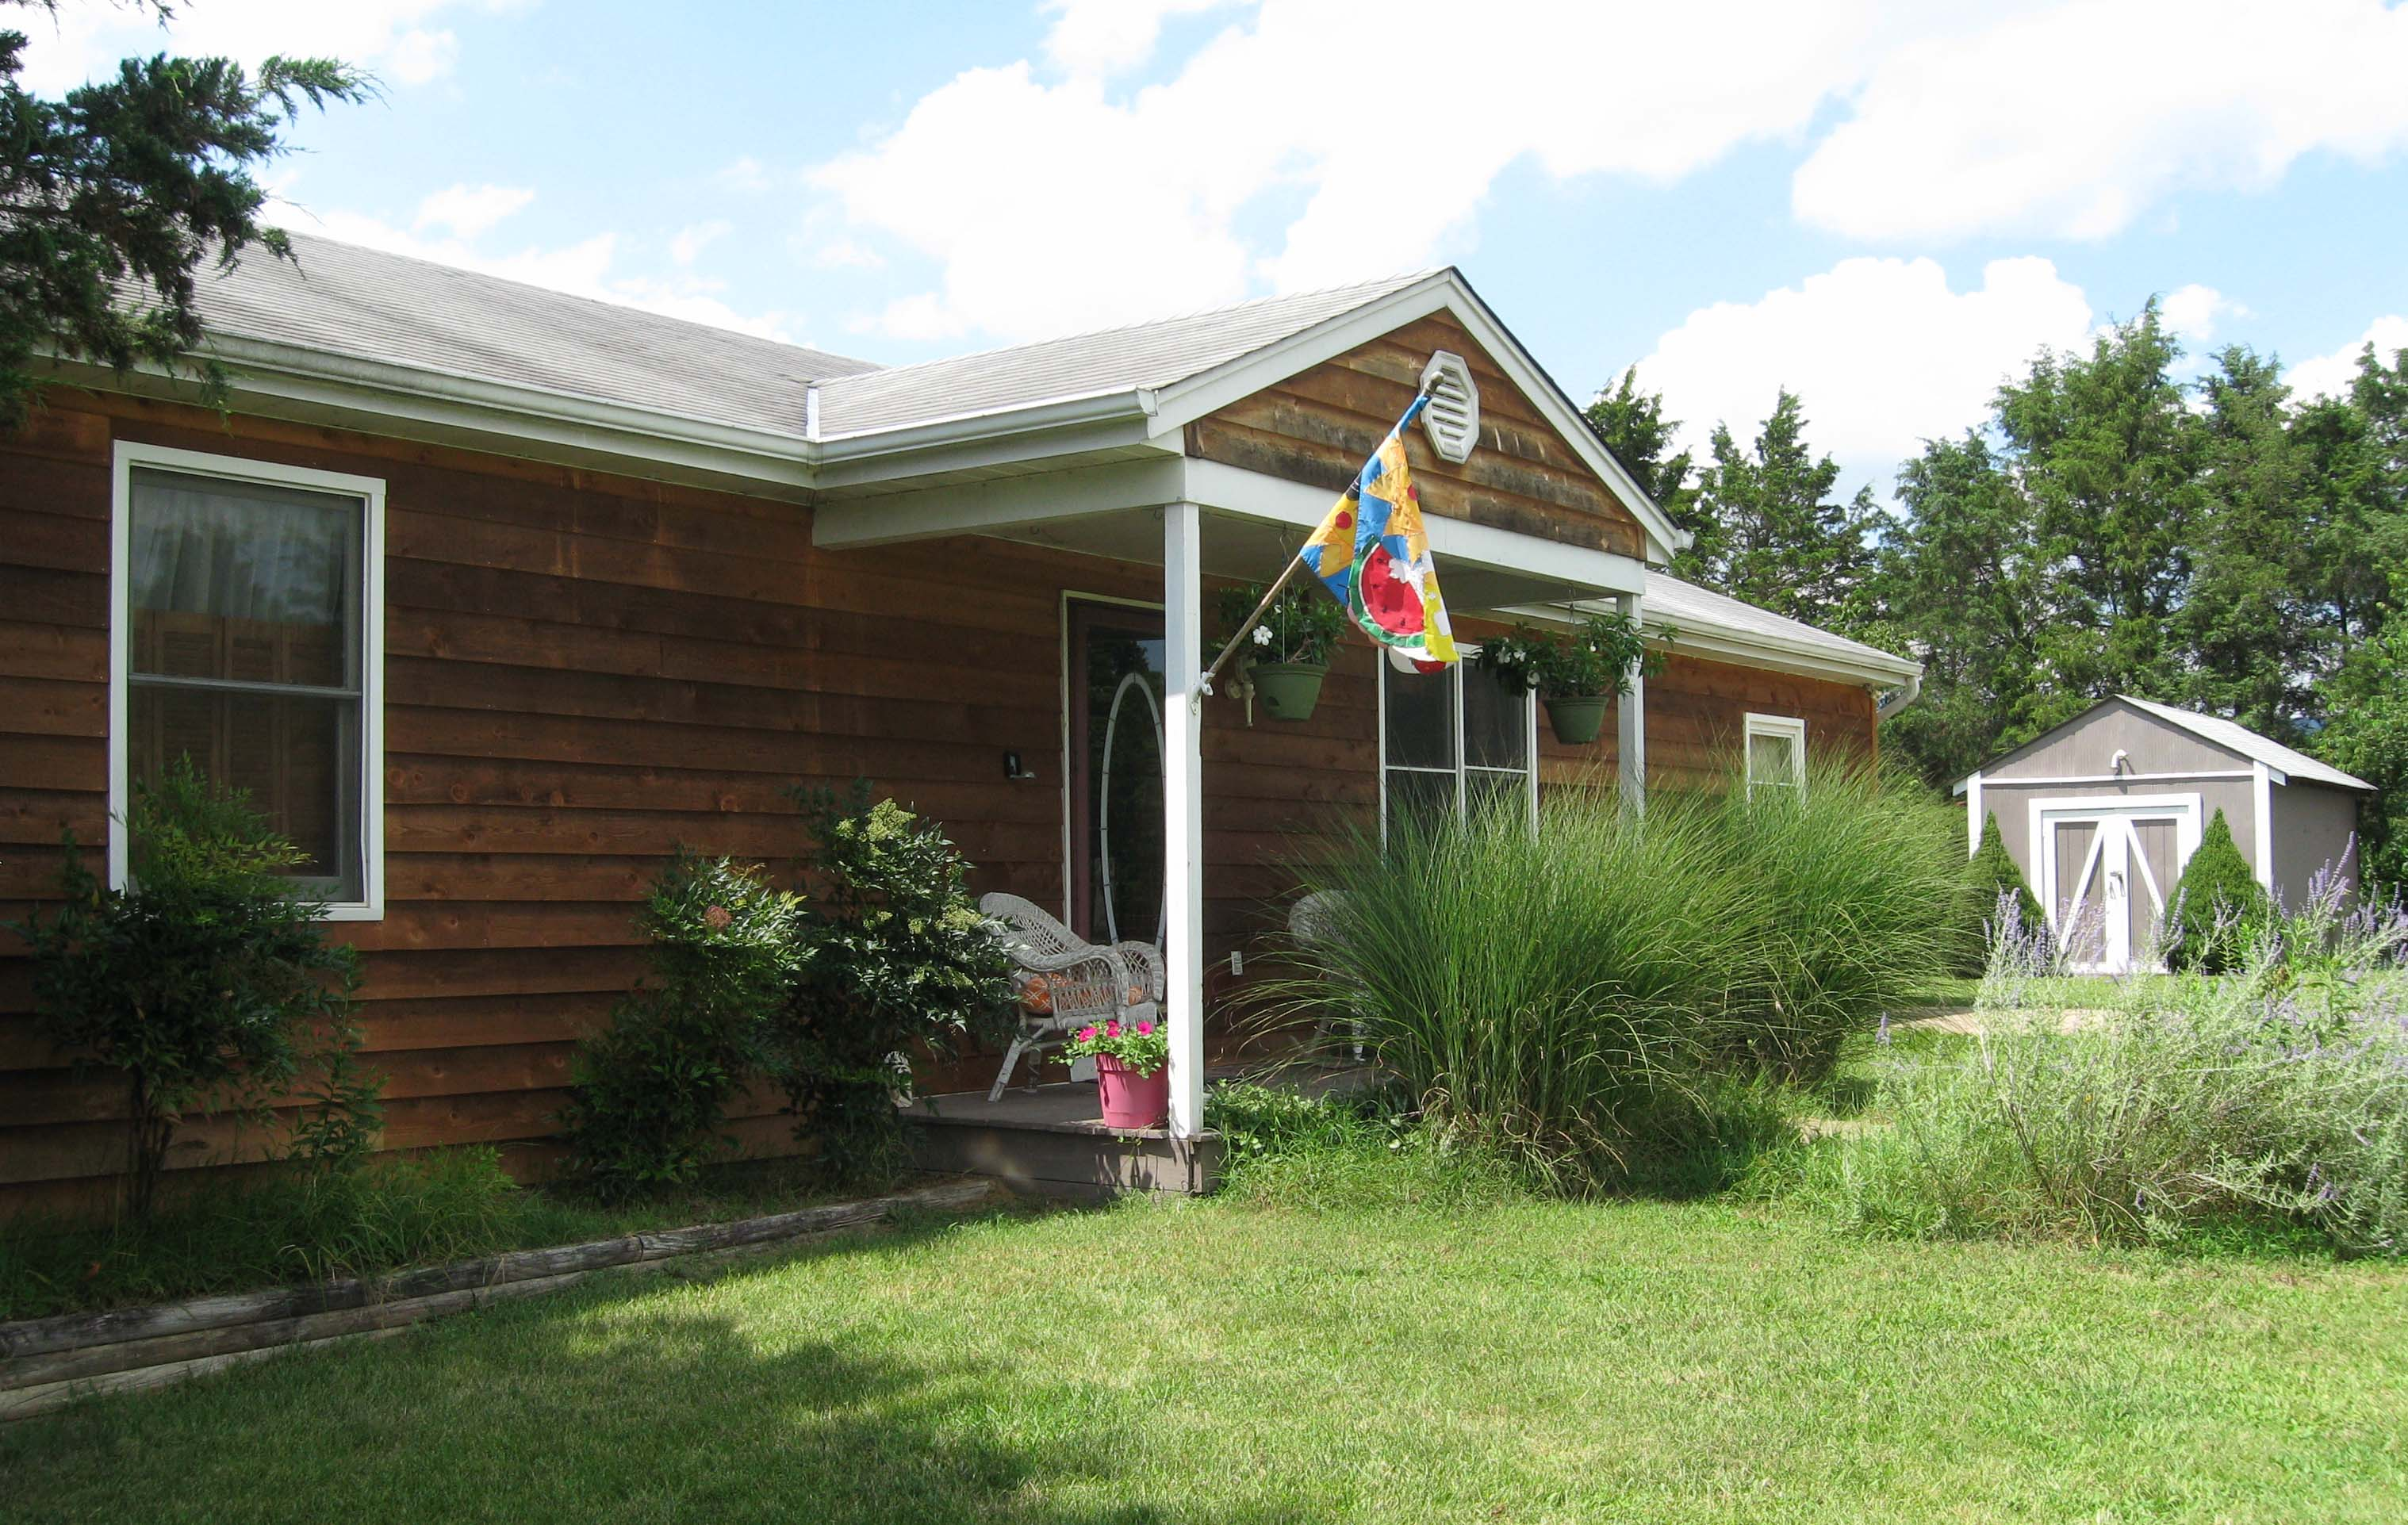 images wv luray gazette rental virginia lazy cabin lodging in best cabins charleston about mail bear rentals stock lodge of new